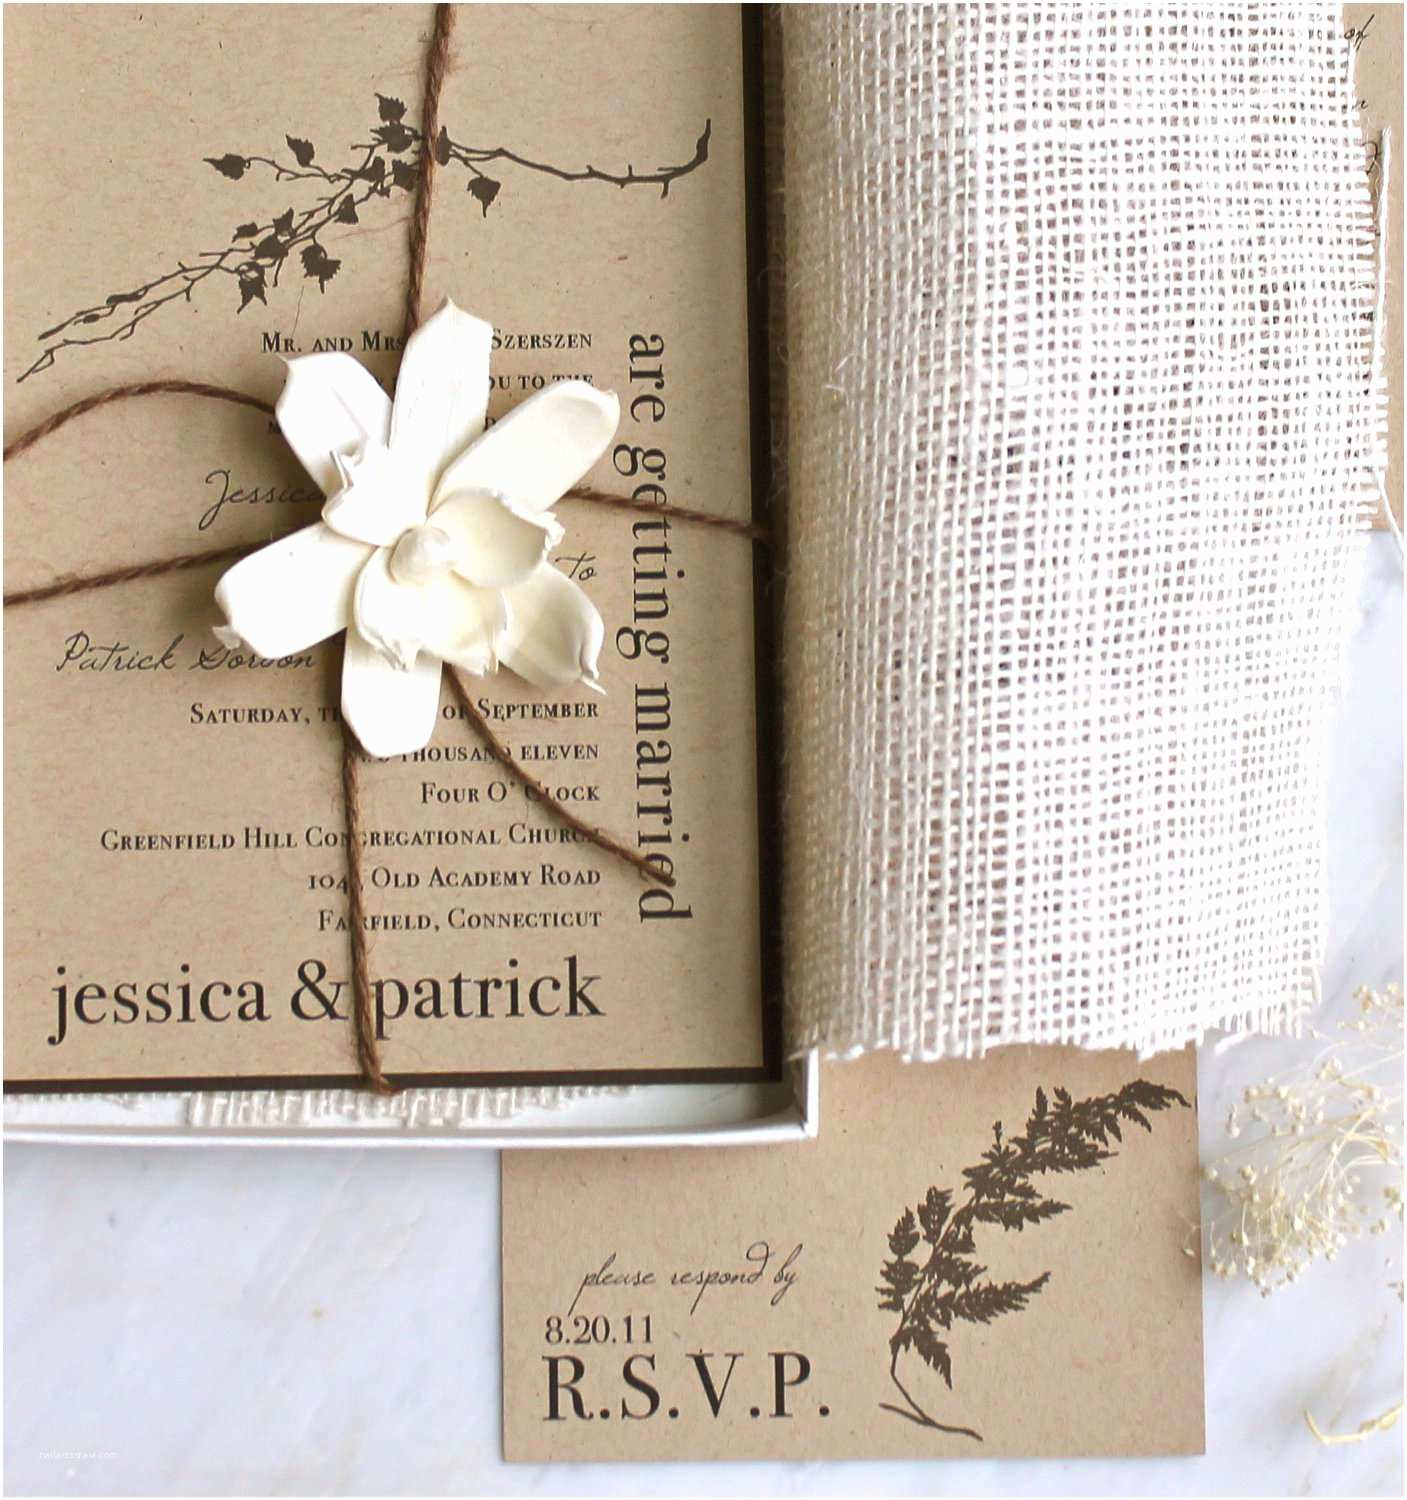 Create Your Own Wedding Invitations Free Design Your Own Wedding Invitations Line Free